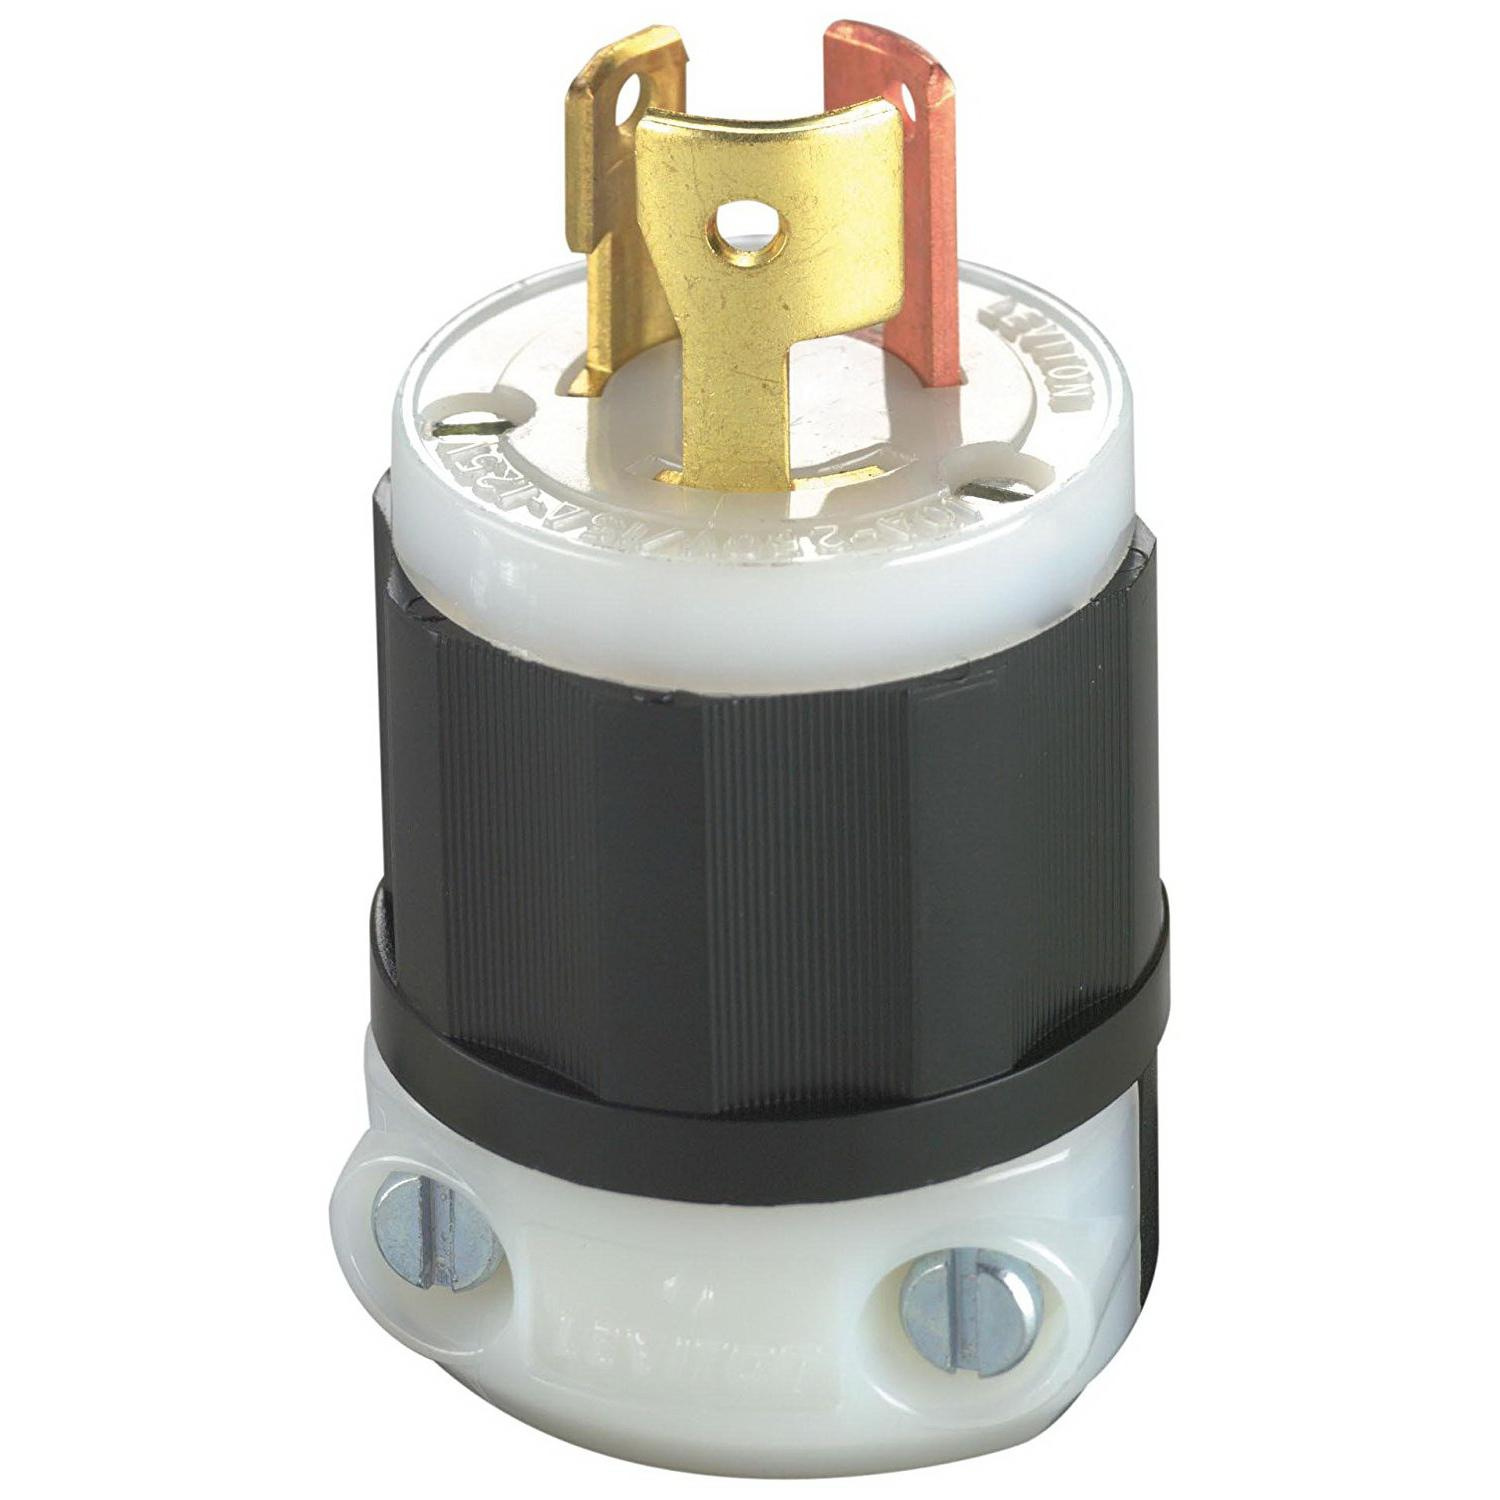 Leviton 7567-C 3 Wire 3 Pole Non-NEMA Polarized Locking Plug 125 ...